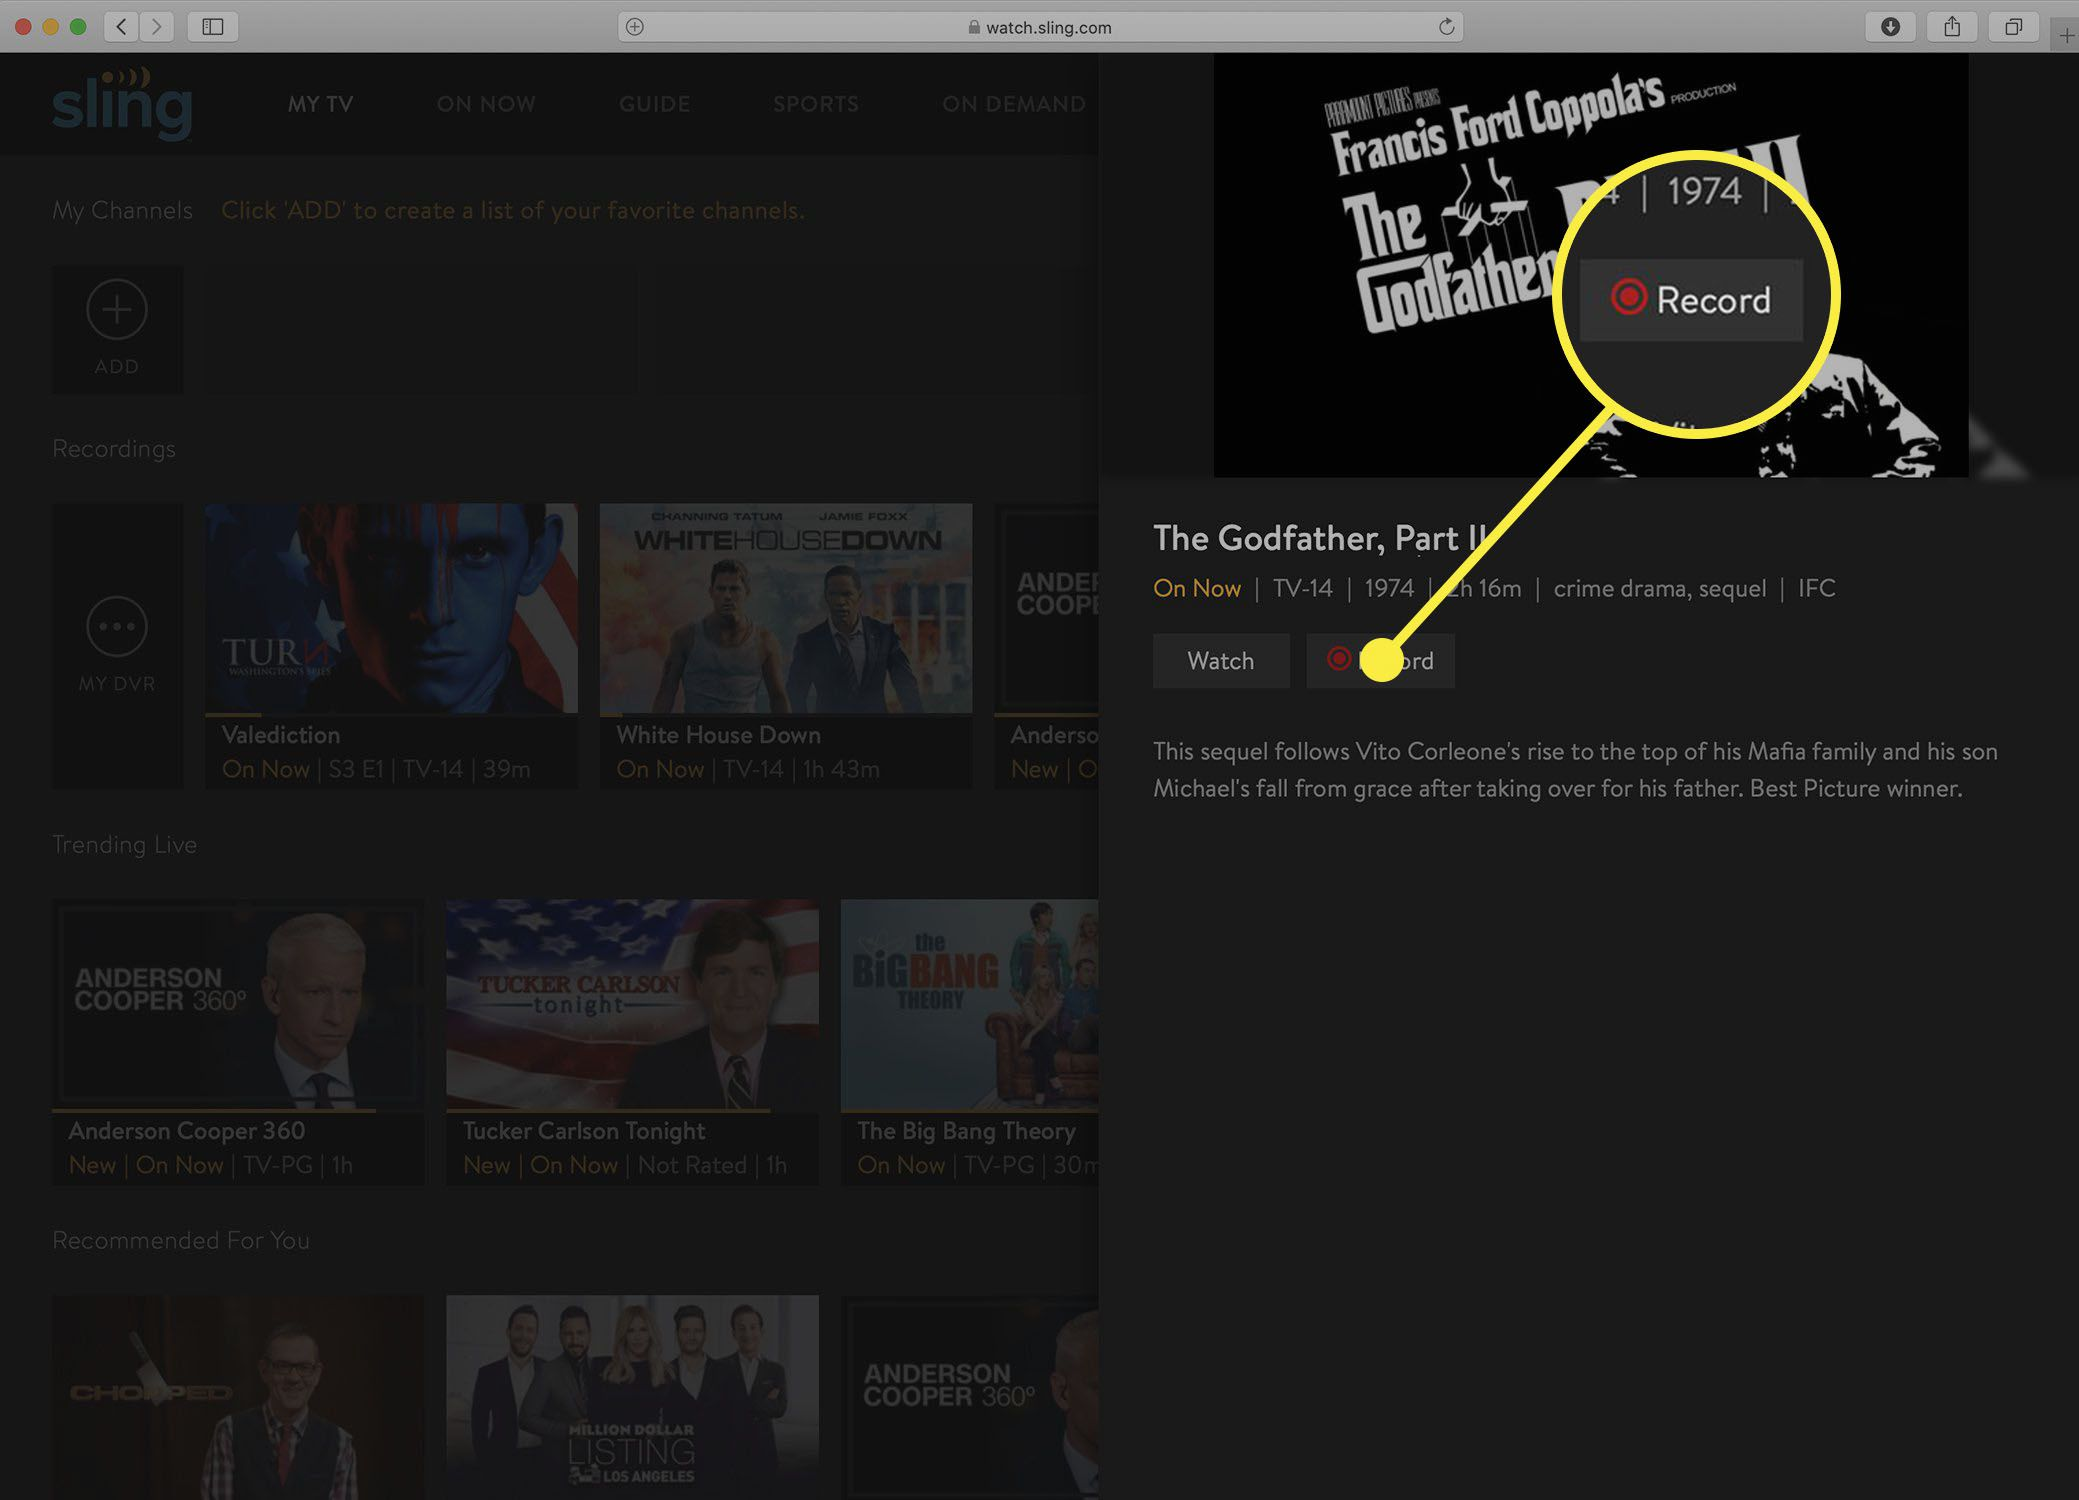 Screenshot of the Sling TV show information screen after a DVR recording is stopped.